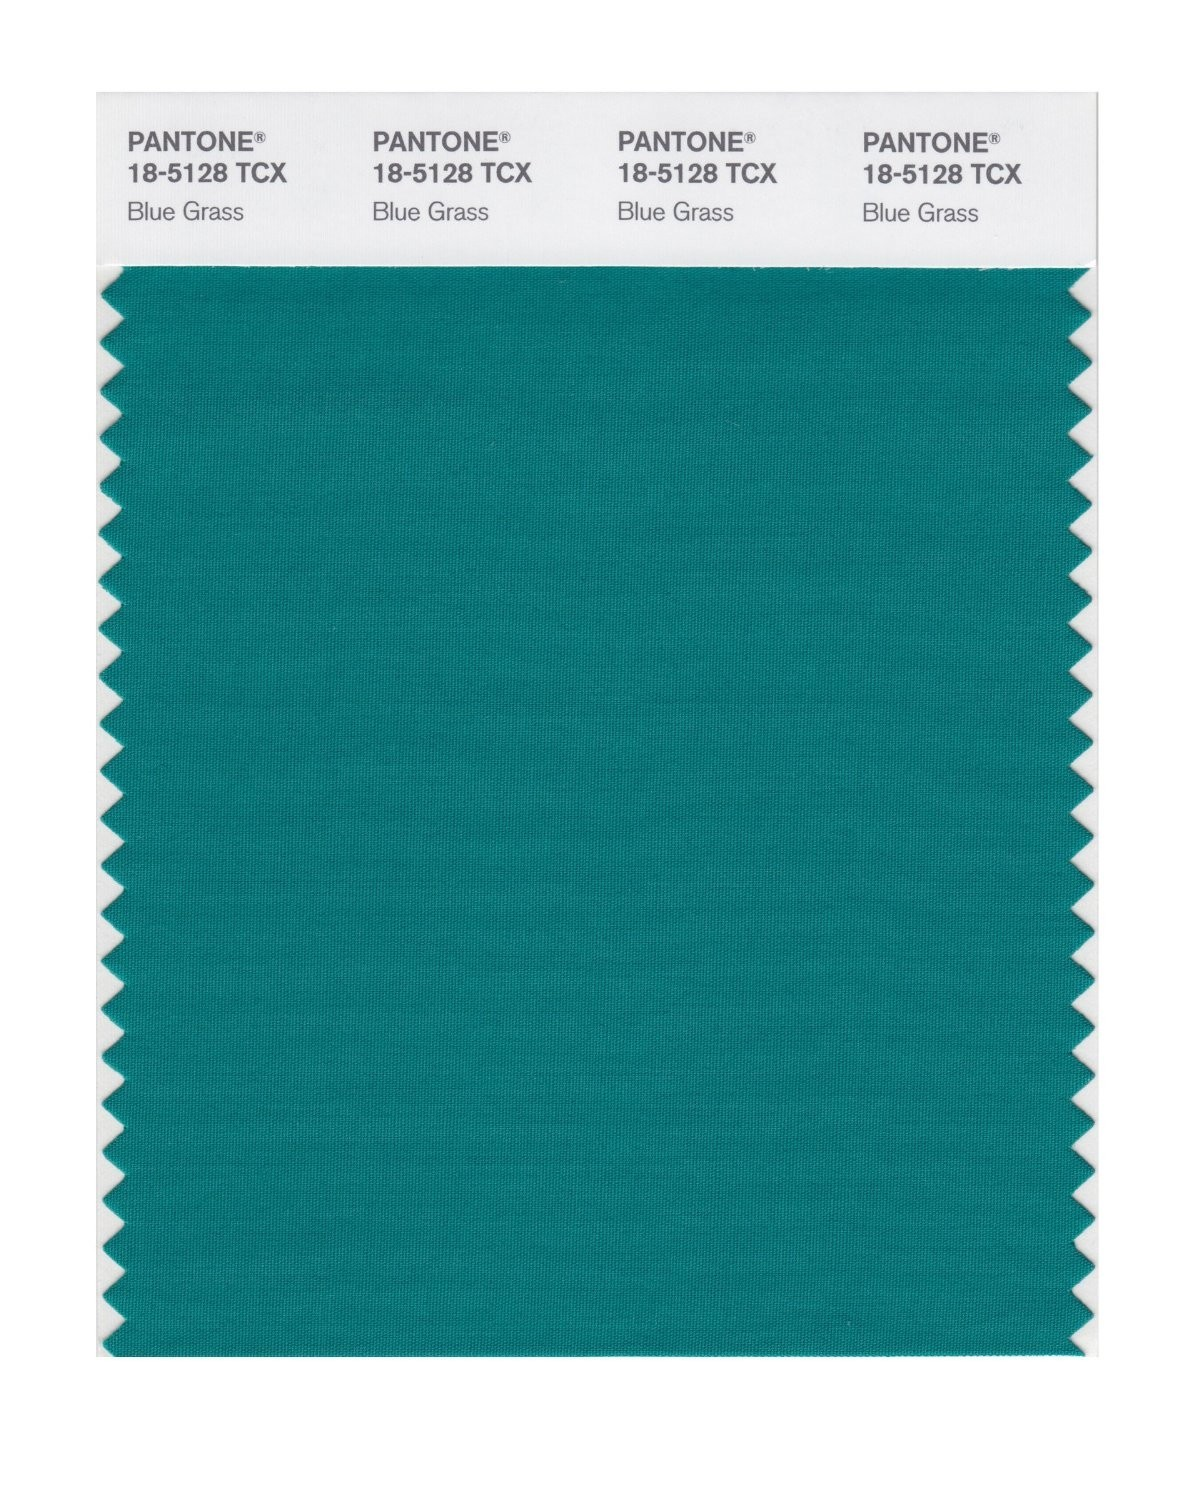 Pantone 18-5128 TCX Swatch Card Blue Grass